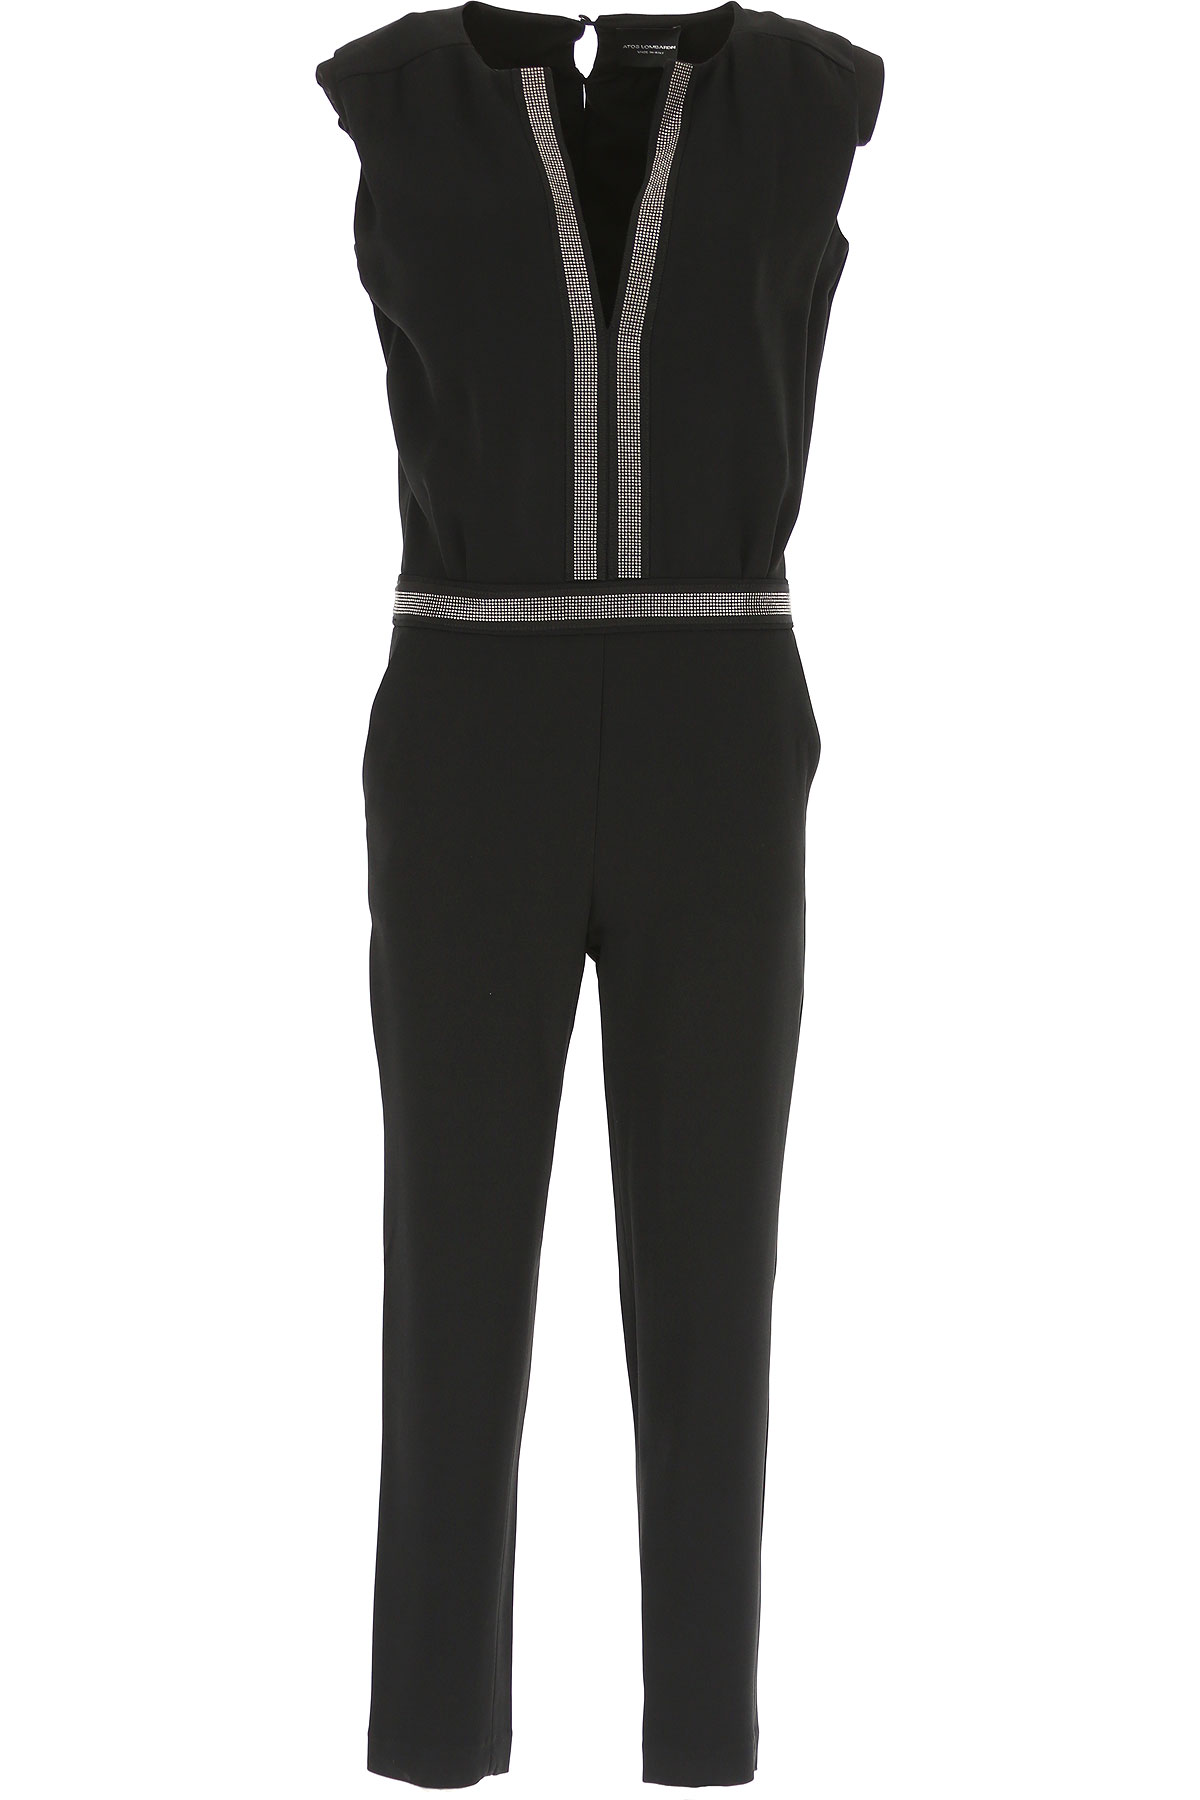 Image of Atos Lombardini Dress for Women, Evening Cocktail Party, Black, polyester, 2017, 10 6 8